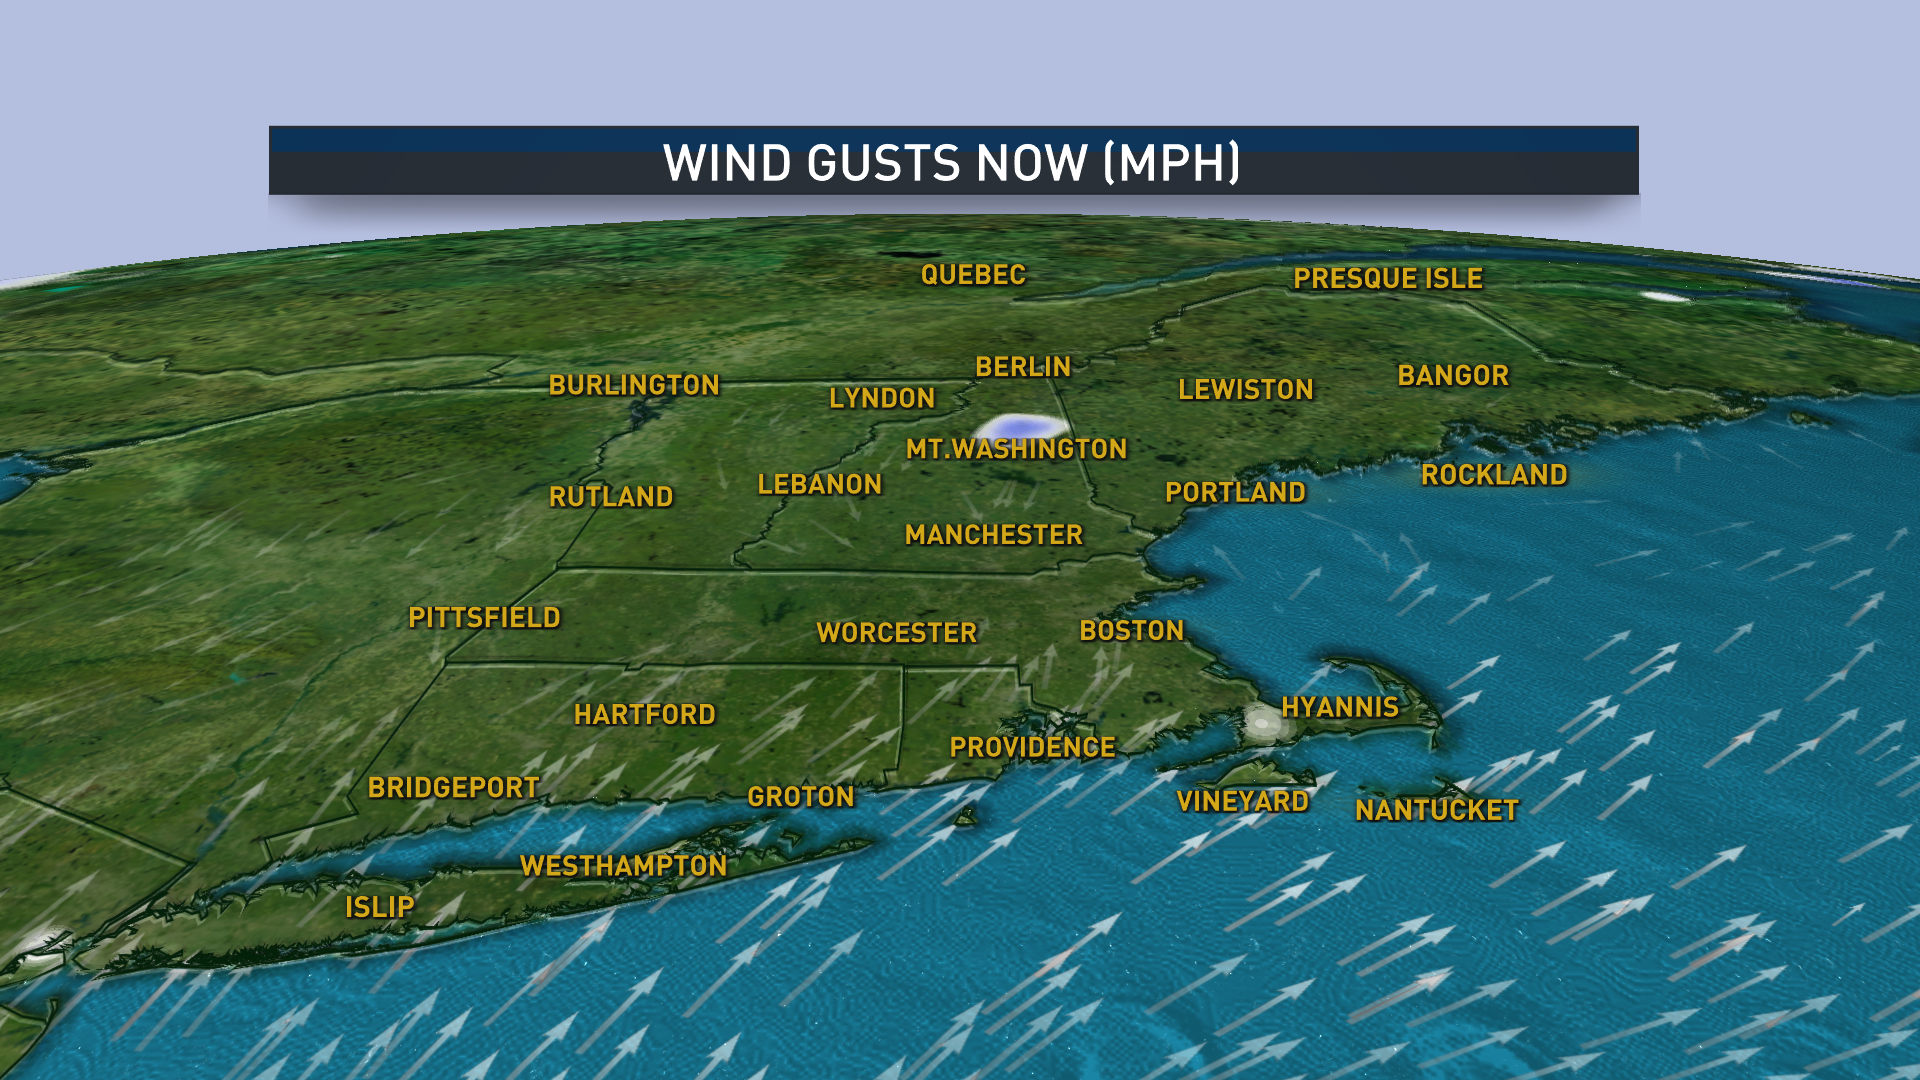 Current Wind Gusts